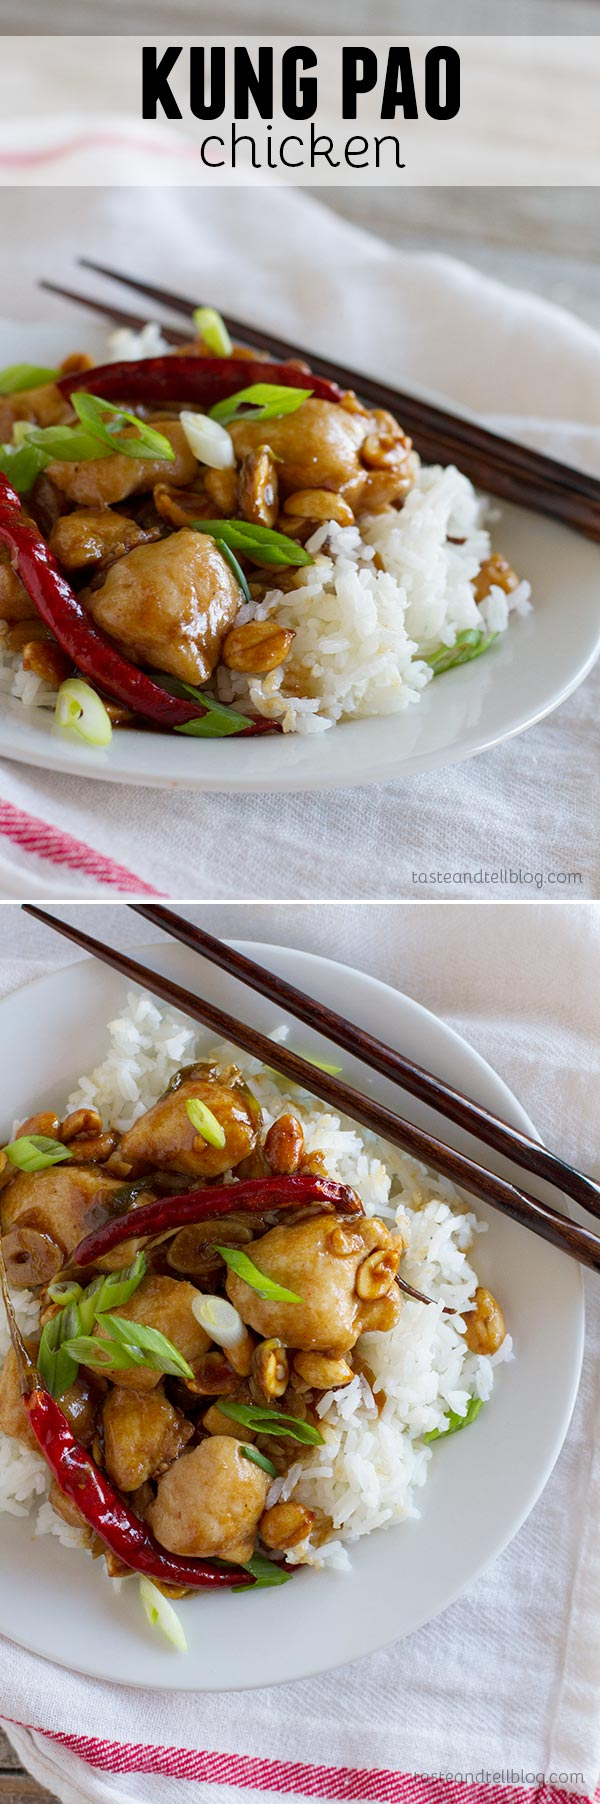 Faster than take-out - this Kung Pao Chicken recipe is spicy and full of flavor.  Simple ingredients come together to make this easy weeknight dinner recipe.